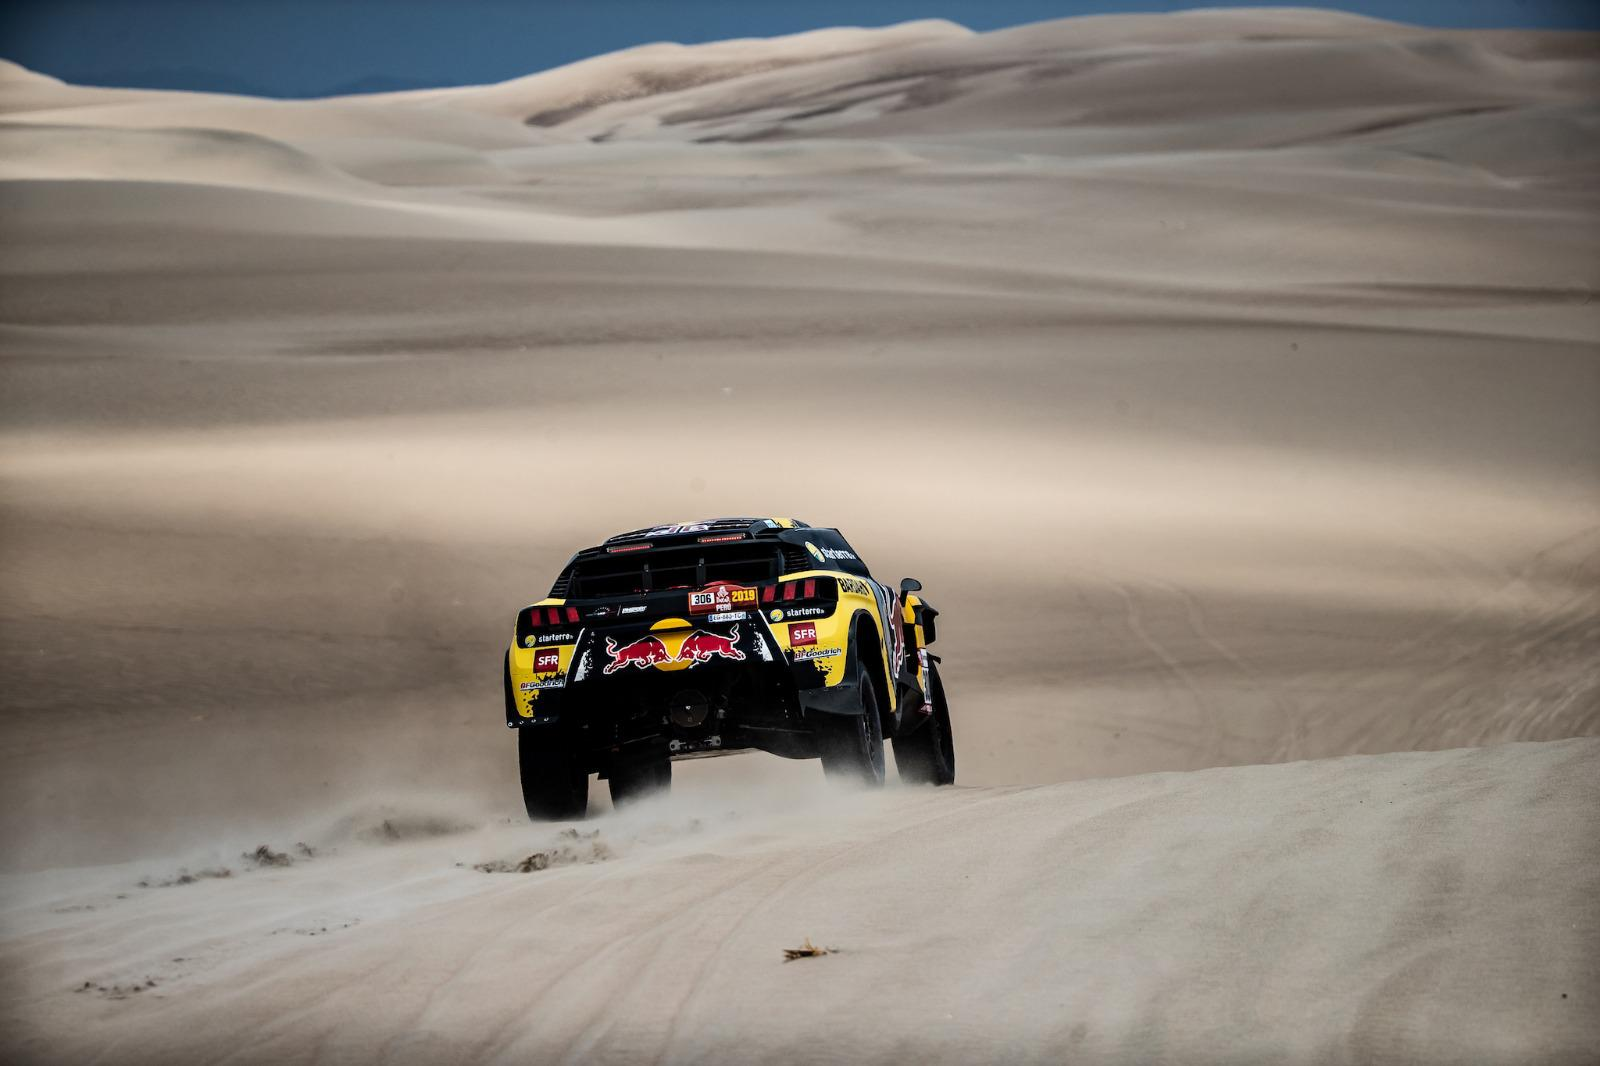 dakar 2019 victoire du 3008 dkr ph sport de s bastien loeb et daniel elena sur l 39 tape 2. Black Bedroom Furniture Sets. Home Design Ideas